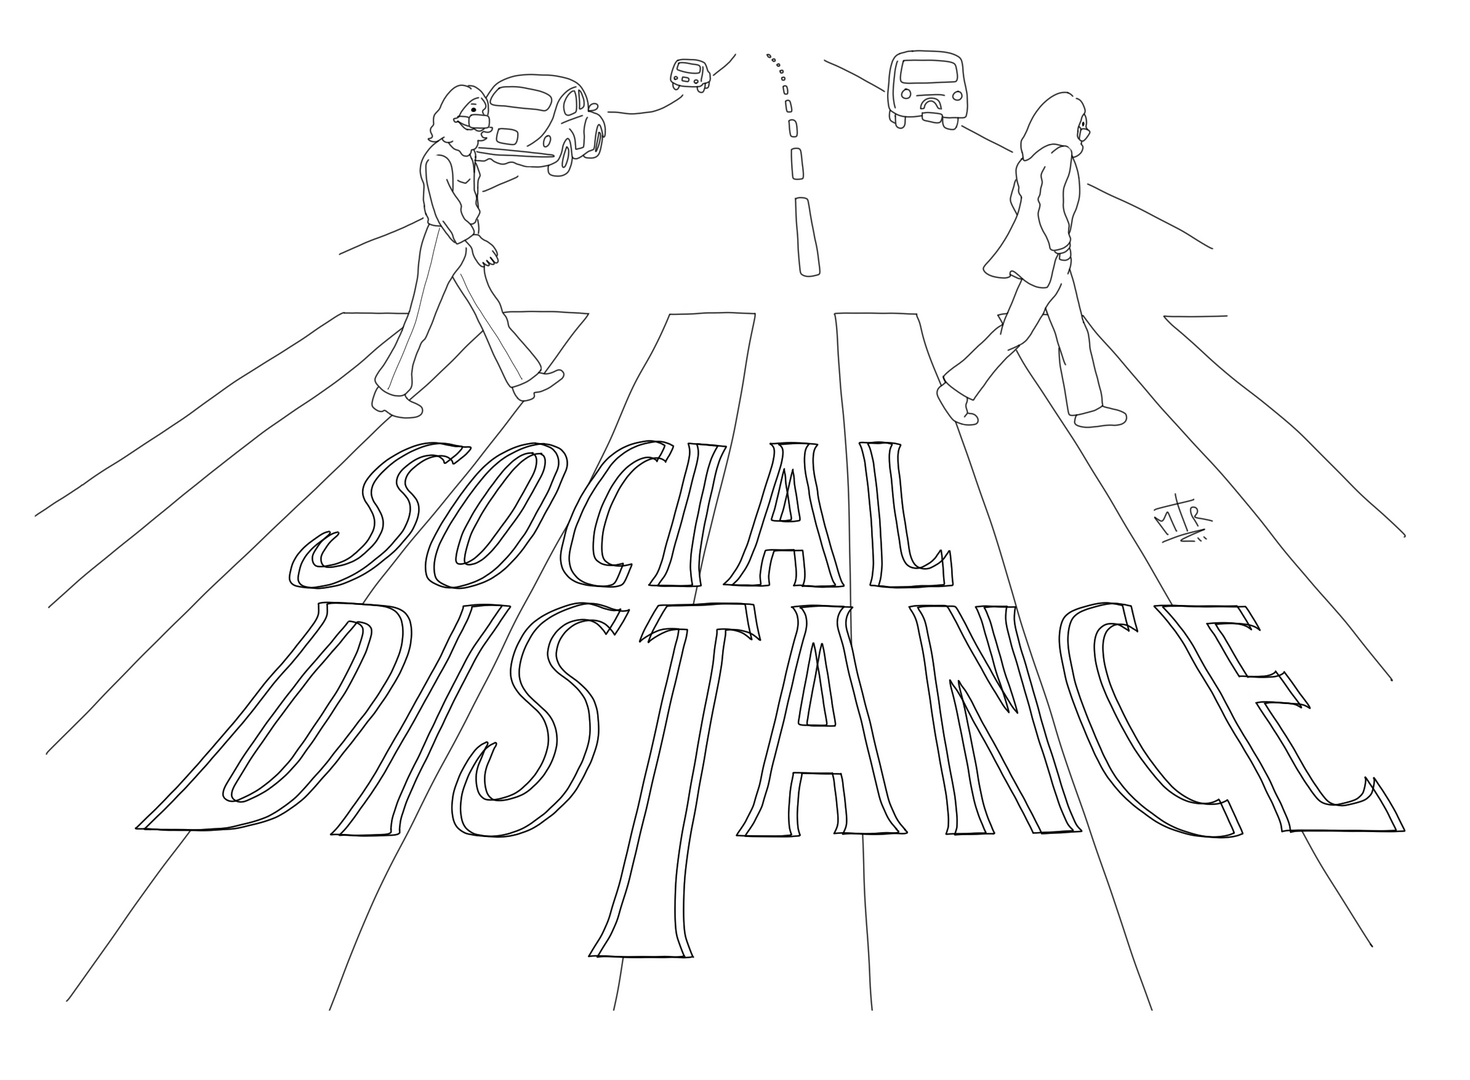 SOCIAL_DISTANCE.png